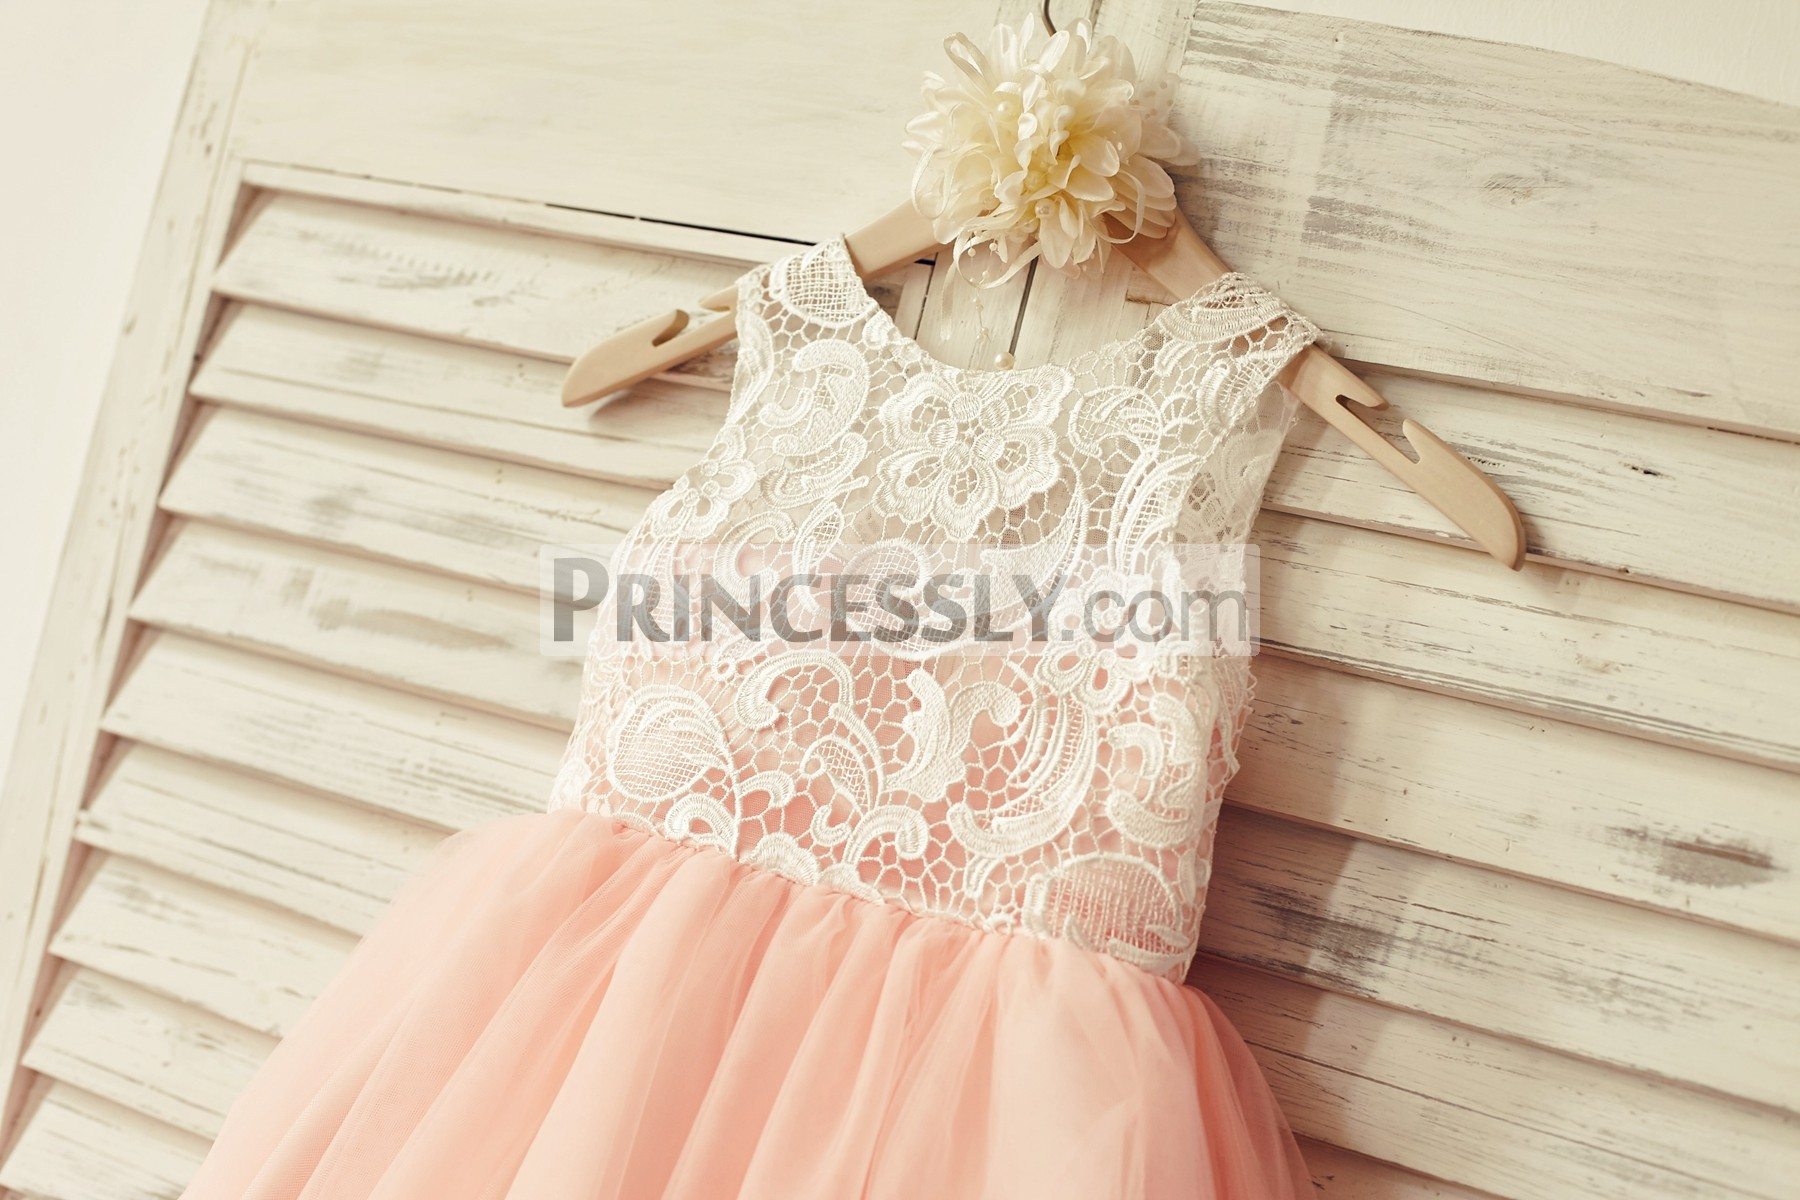 ee3ad562604 Scoop Neckline Sleeveless Design · Blush Pink Tulle Layered and Pleated  Skirt · Ivory Lace Red Tulle Wedding Flower Girl Dress